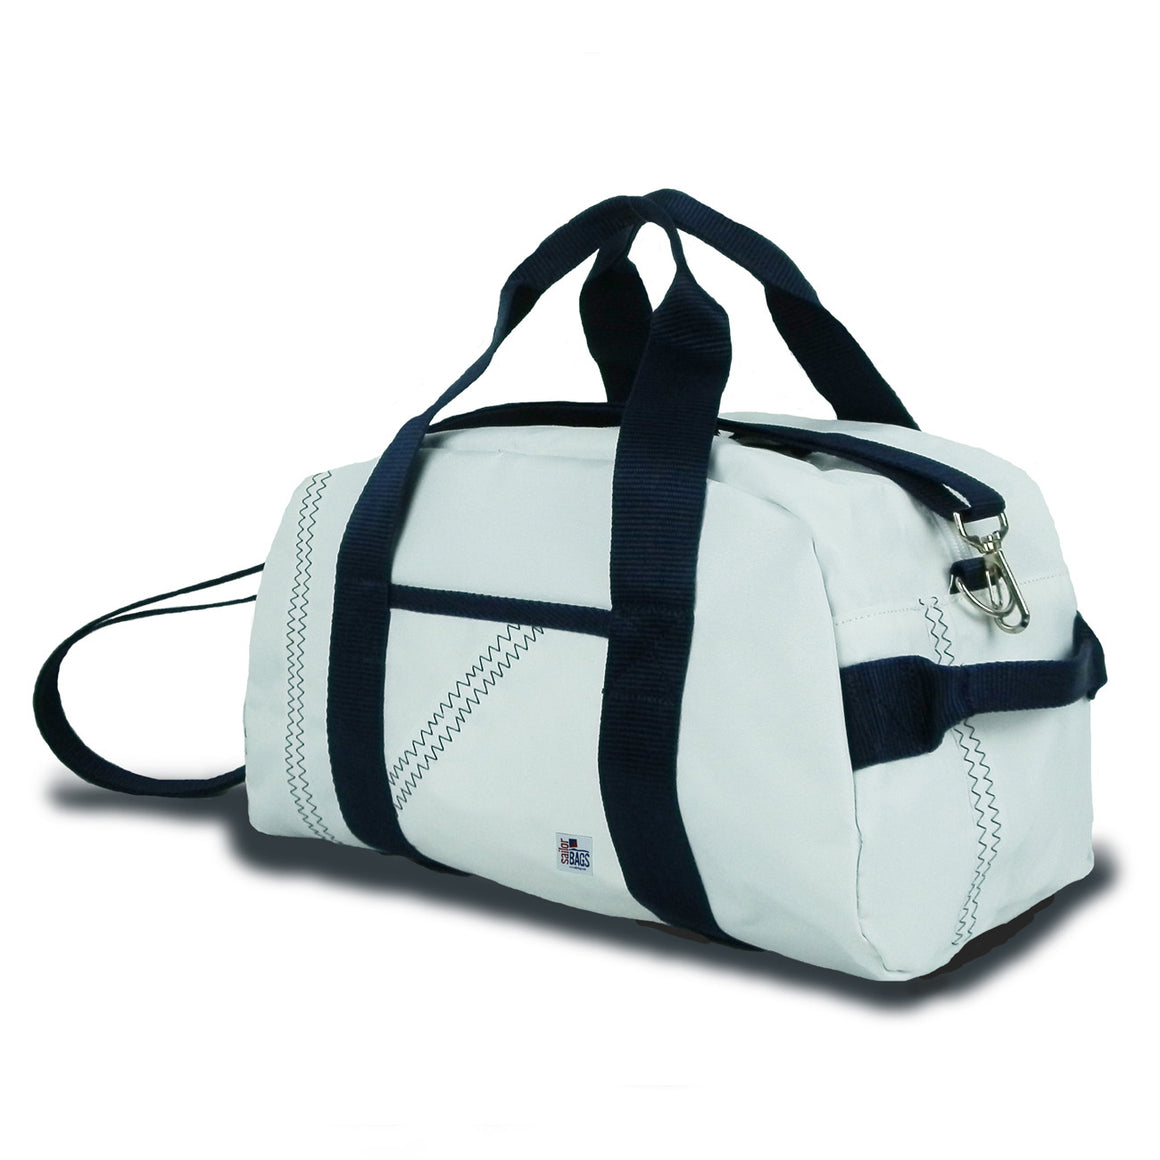 Newport Mini Duffel by SailorBags White w/ Blue Trim